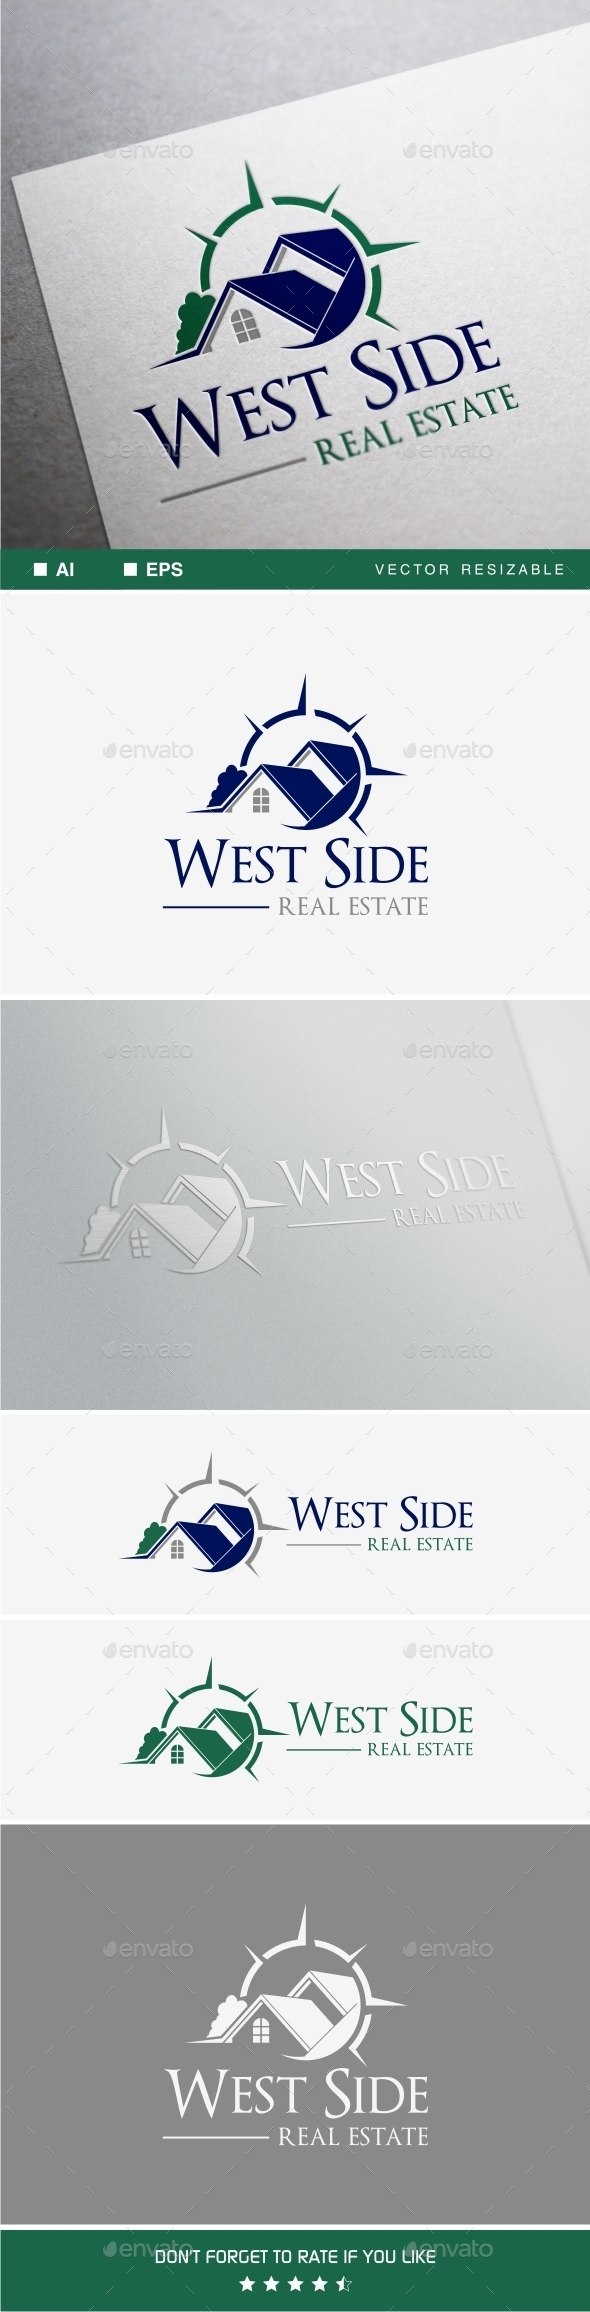 GraphicRiver West Side Real Estate 10201459